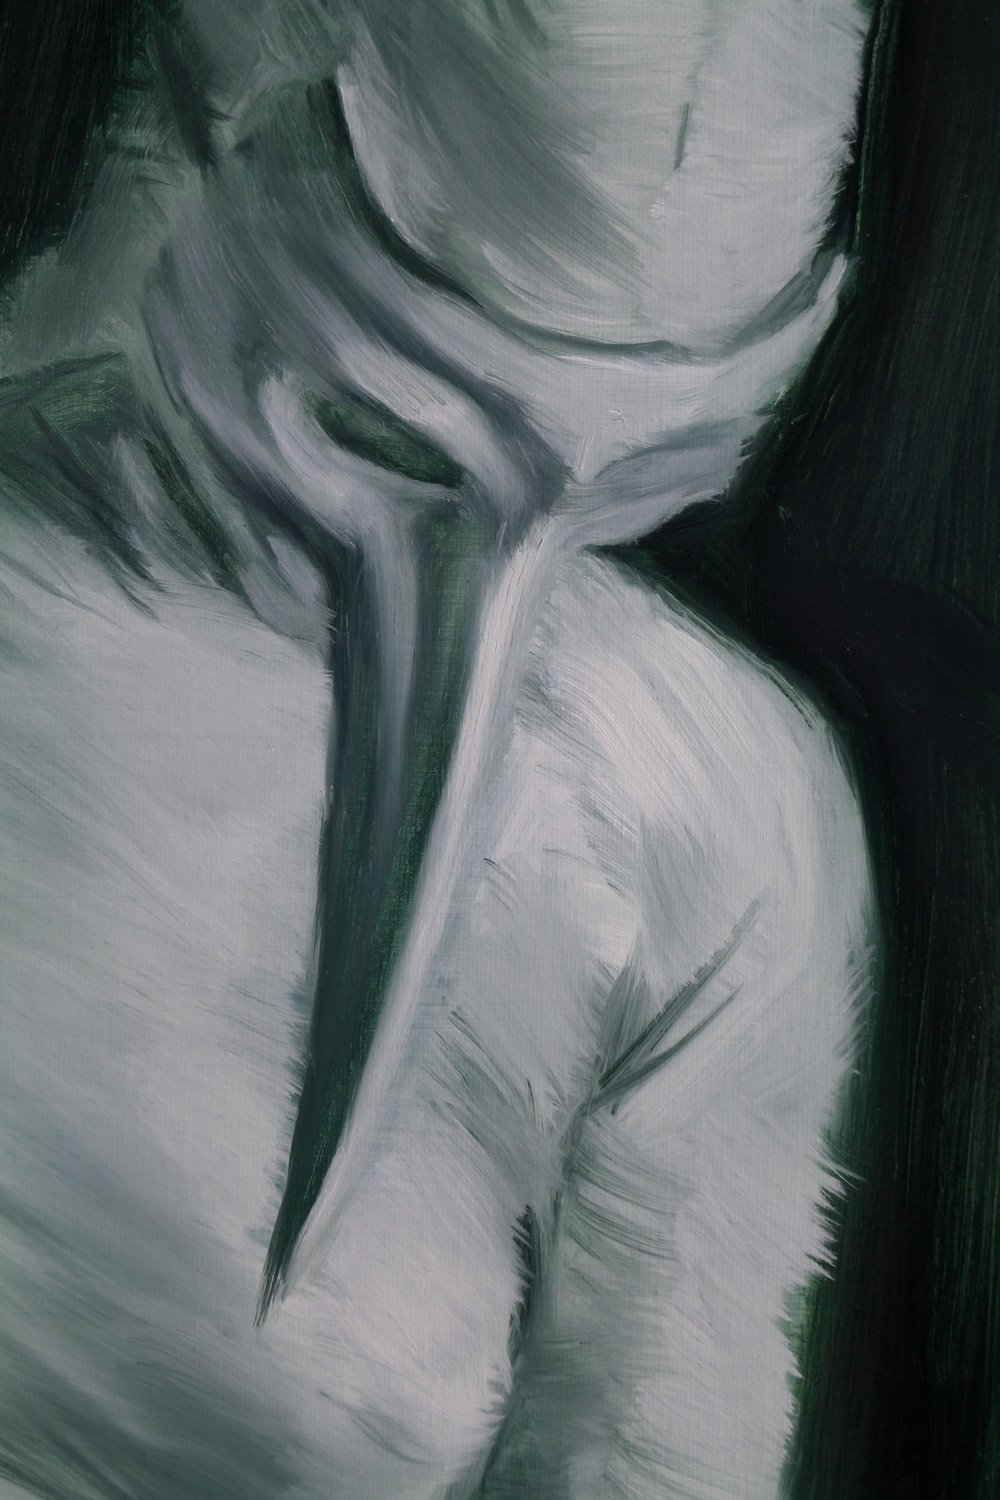 The Proxy (detail)